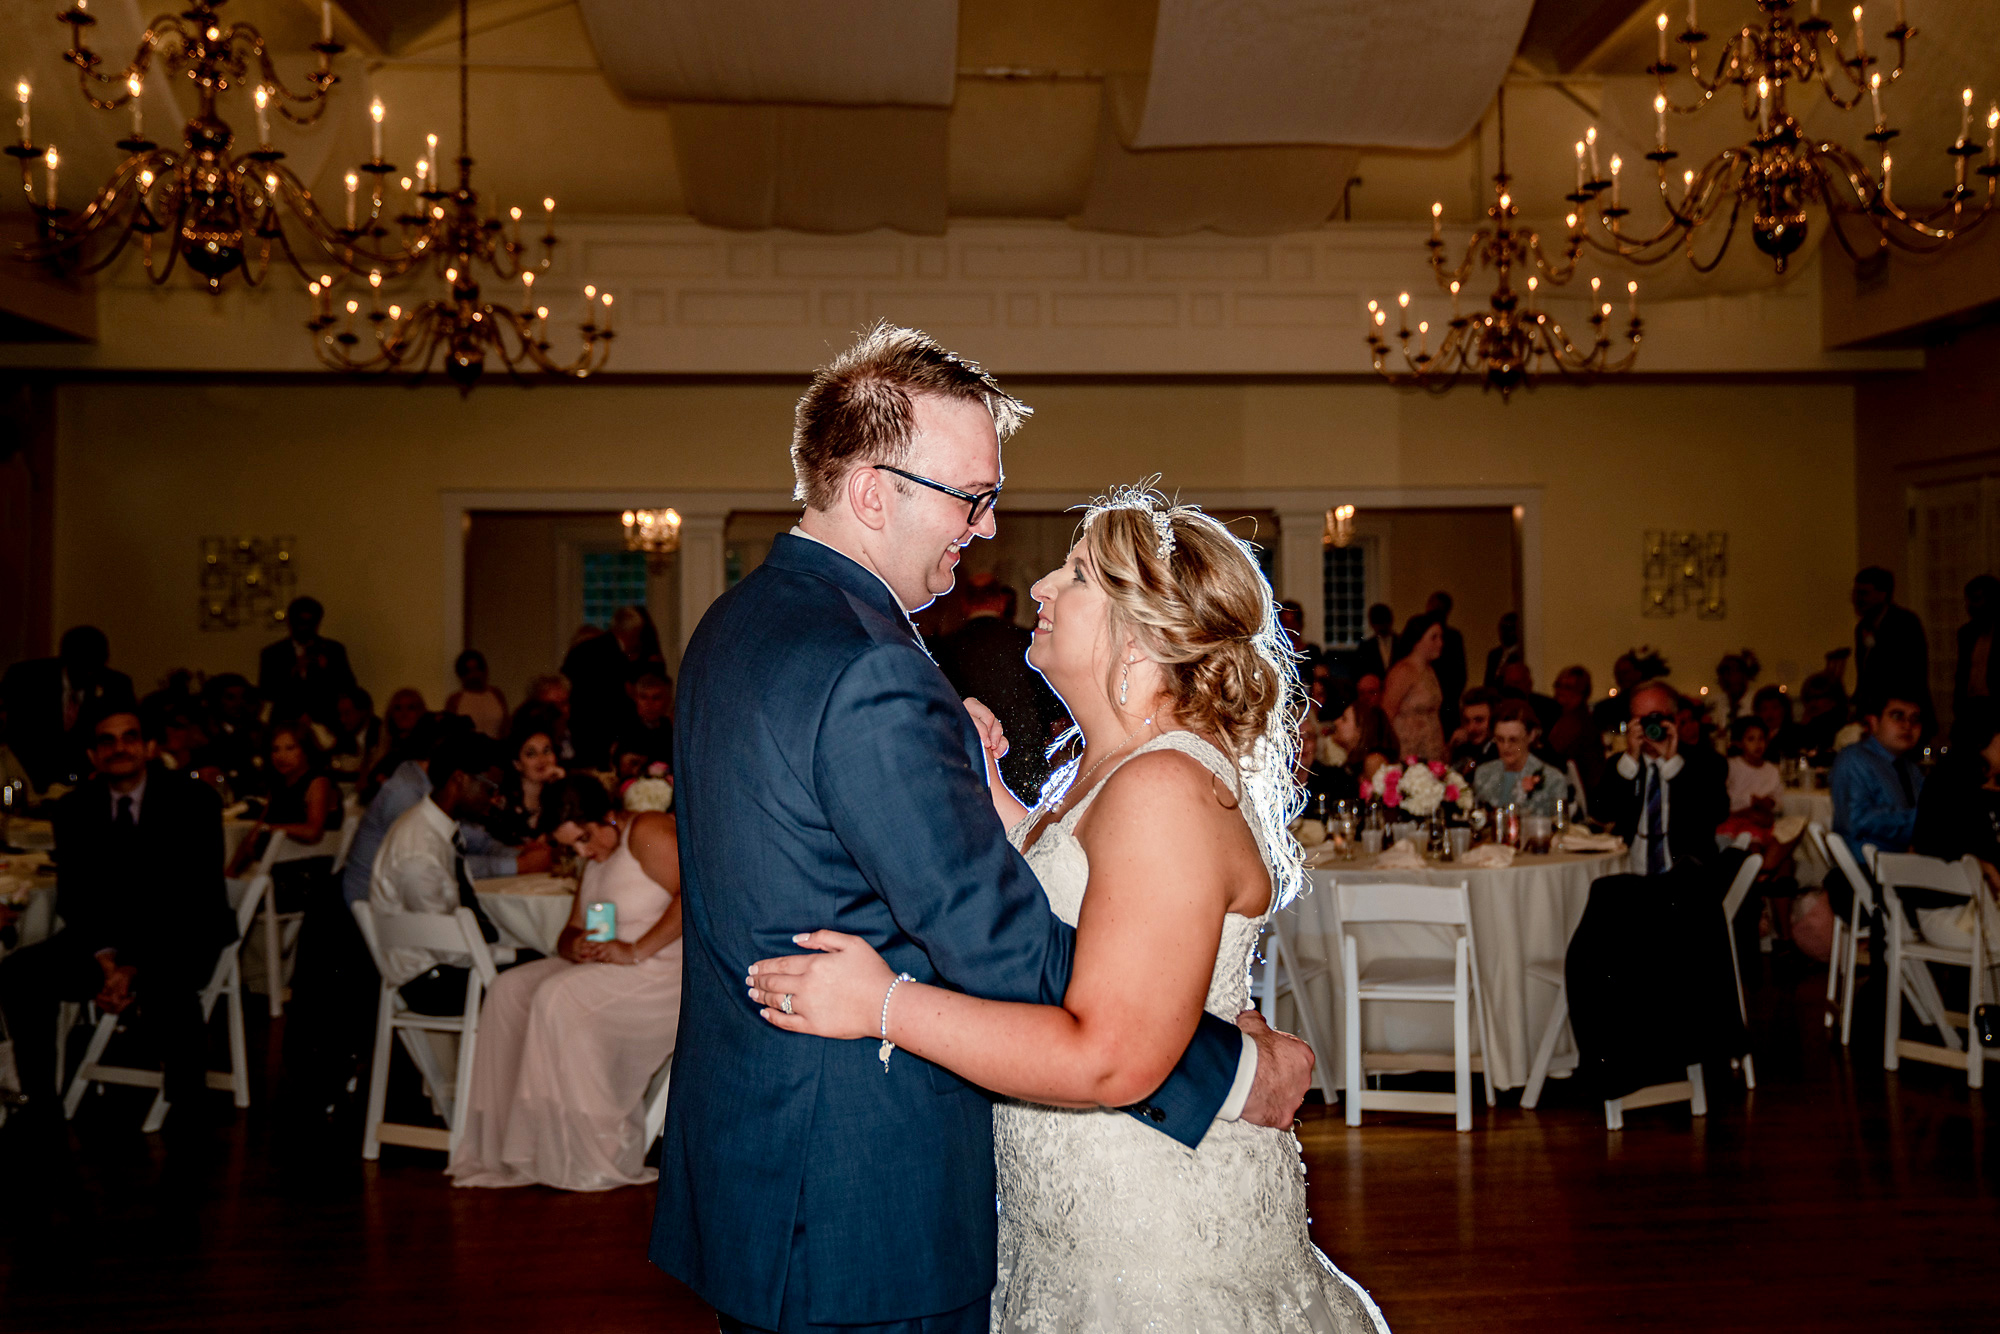 Glendale-Lyceum-Wedding-Cincinnati-Photographer-5.jpg